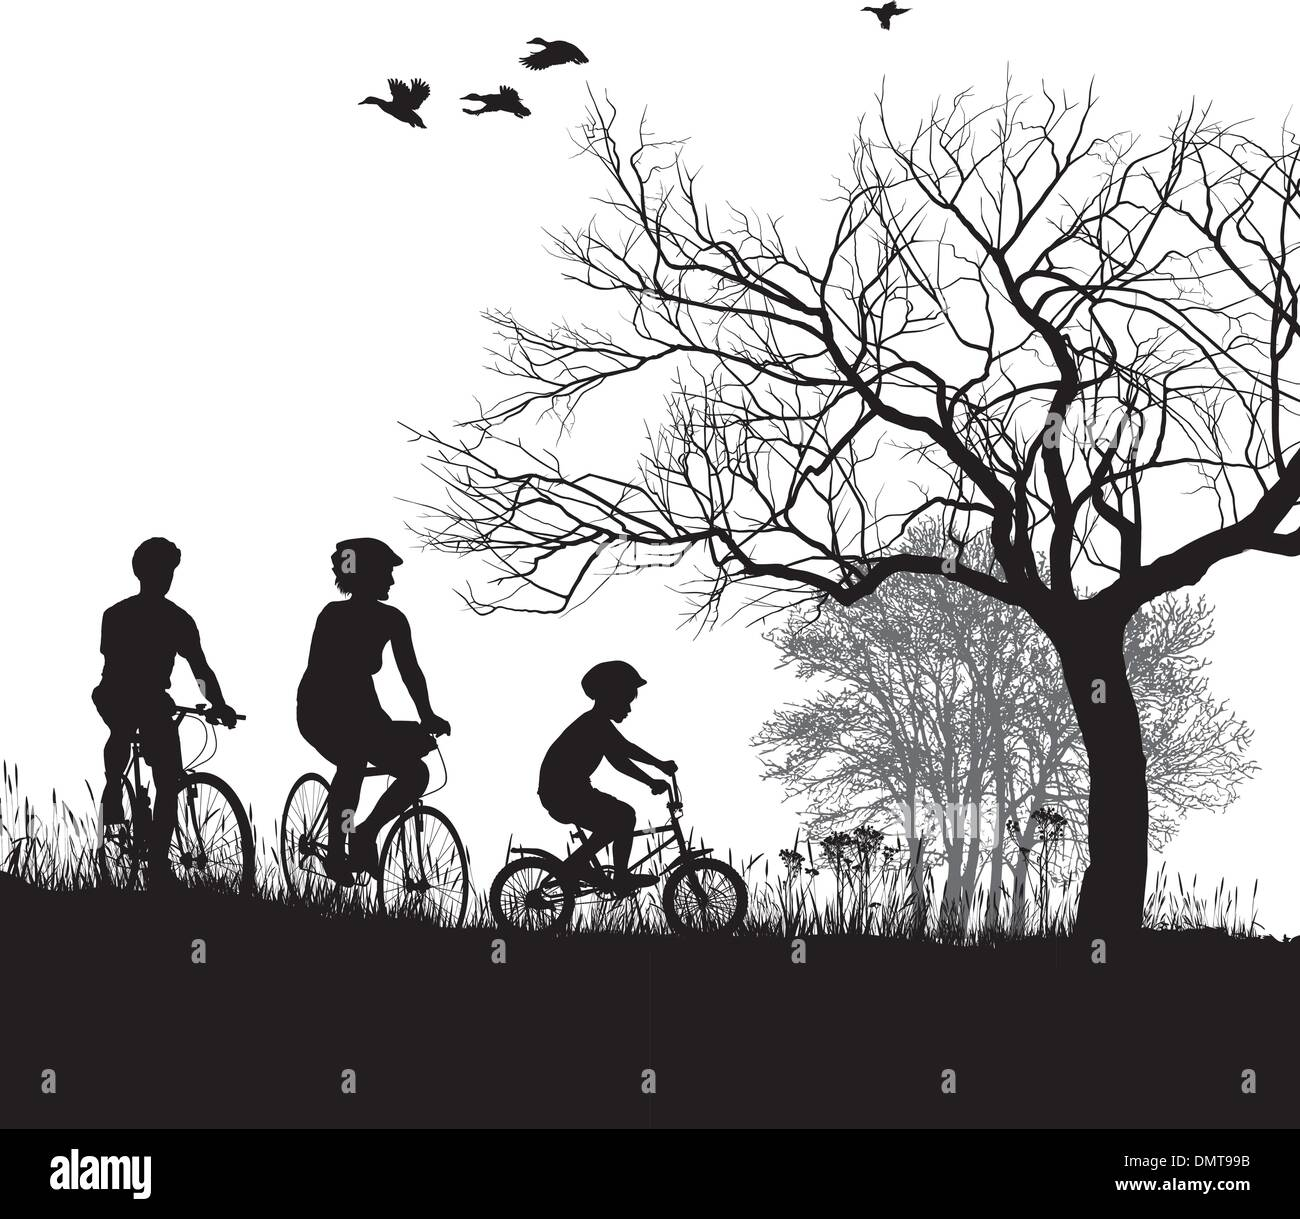 Family cycling in the countryside - Stock Image